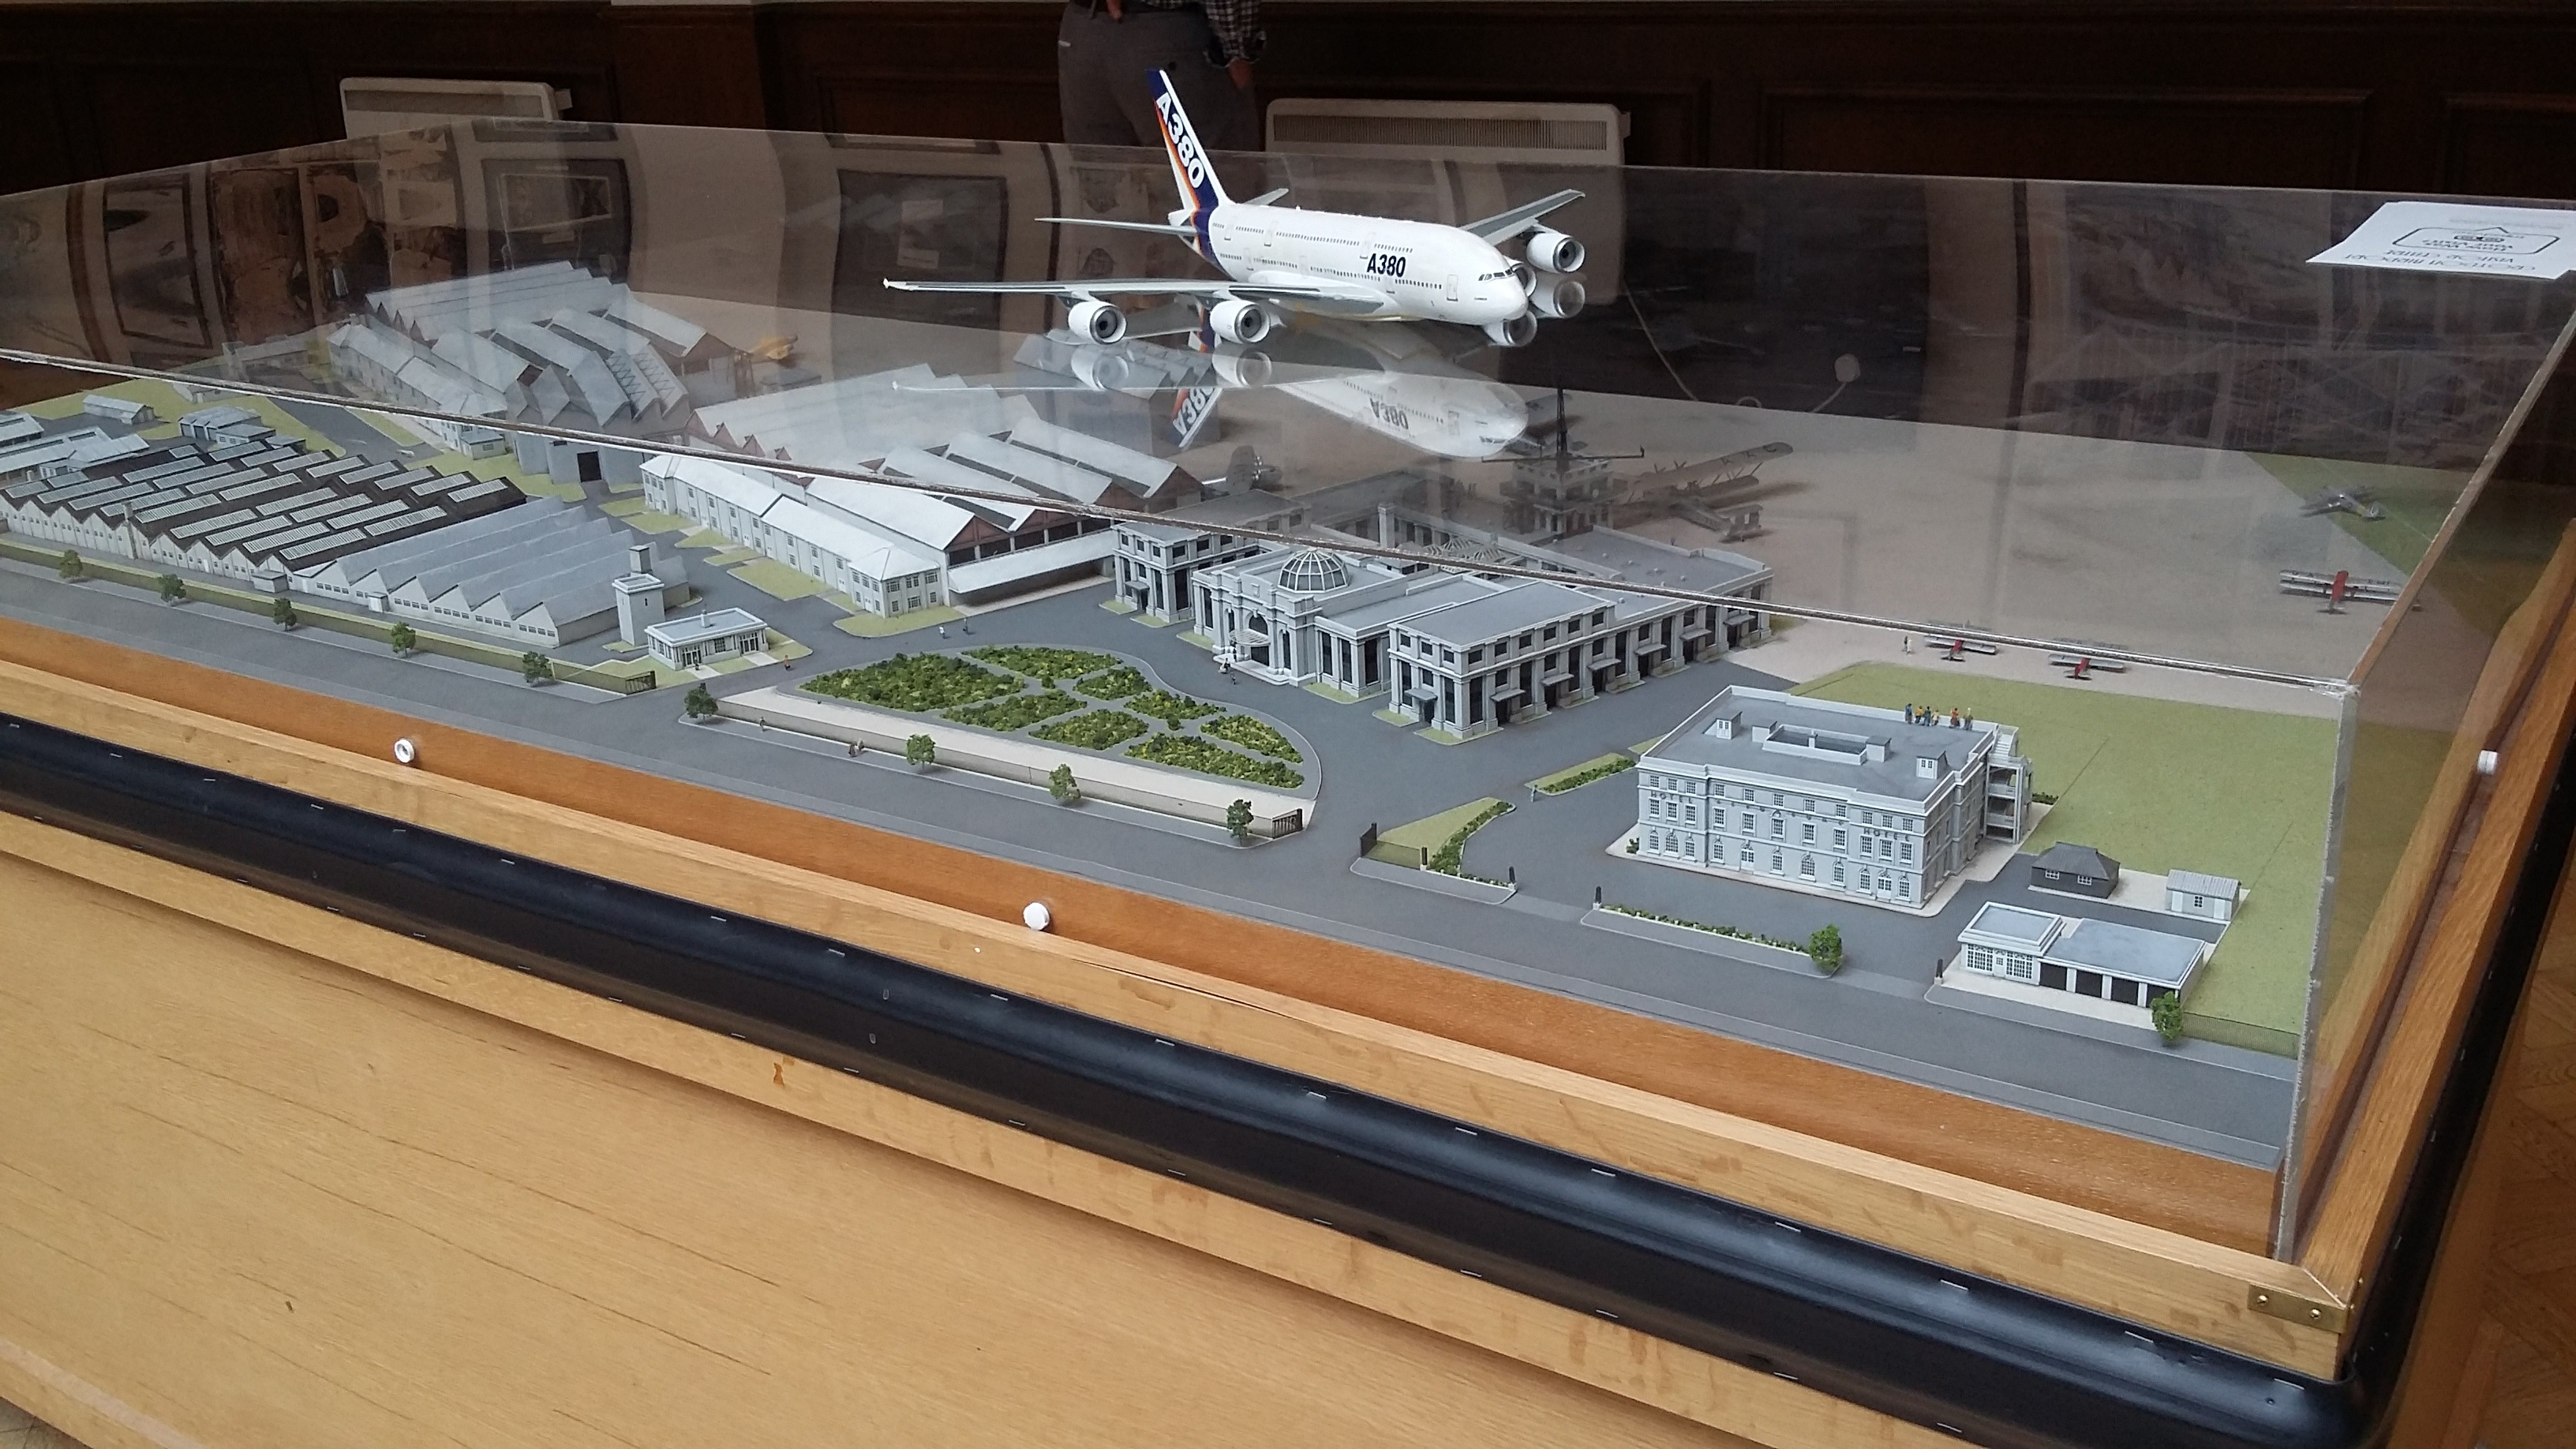 Model of the airport